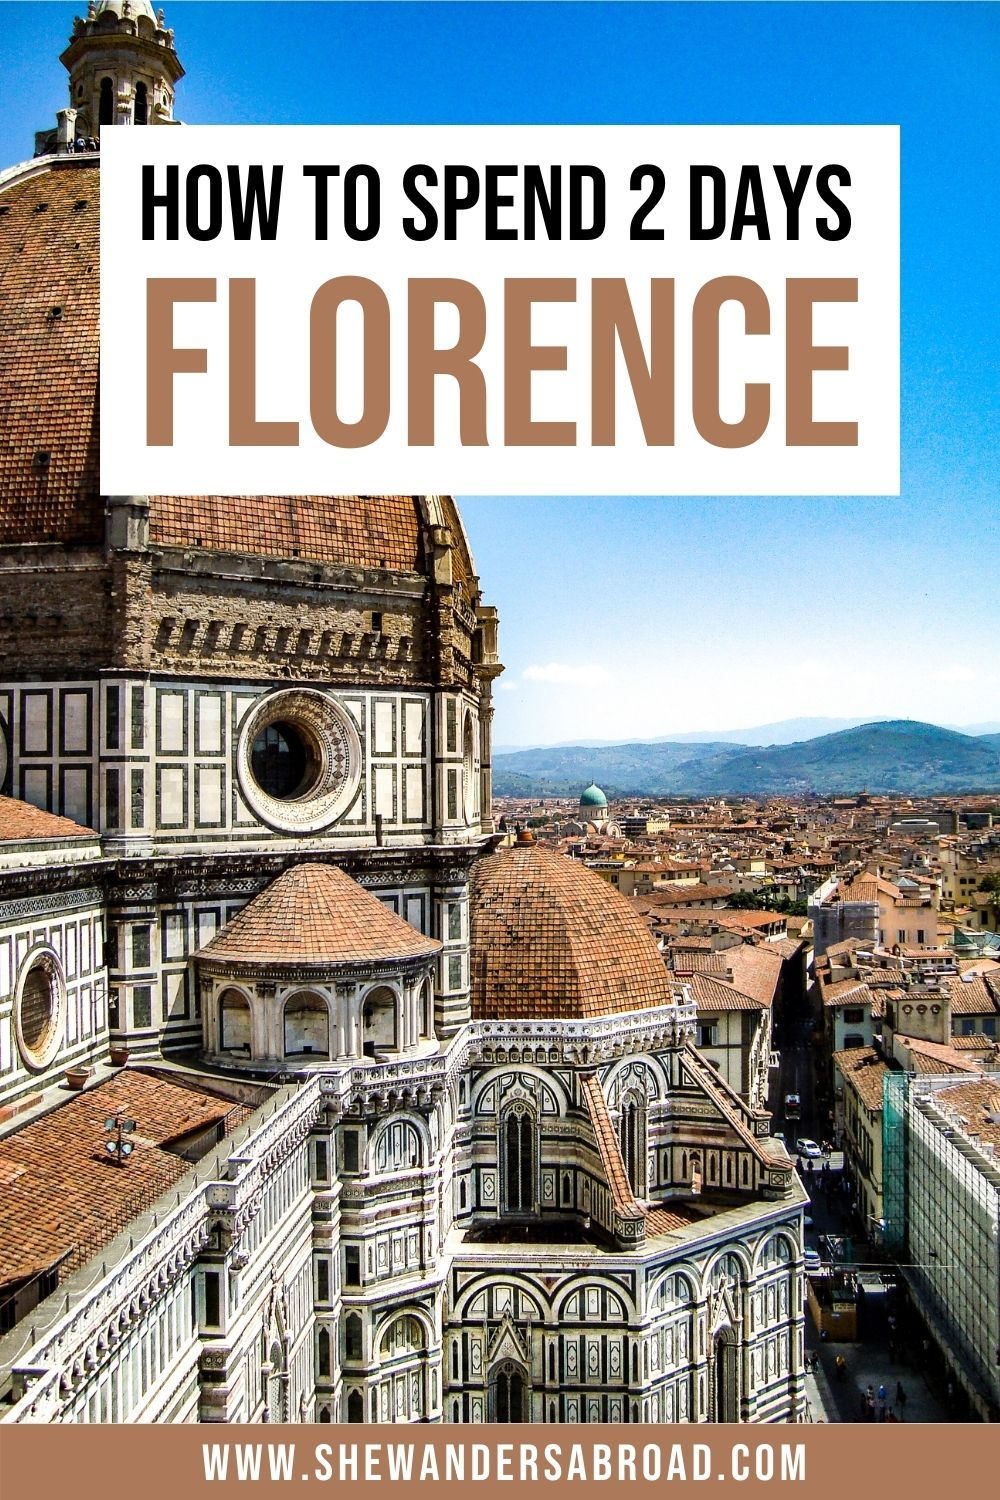 2 Days in Florence Itinerary: How to See Florence